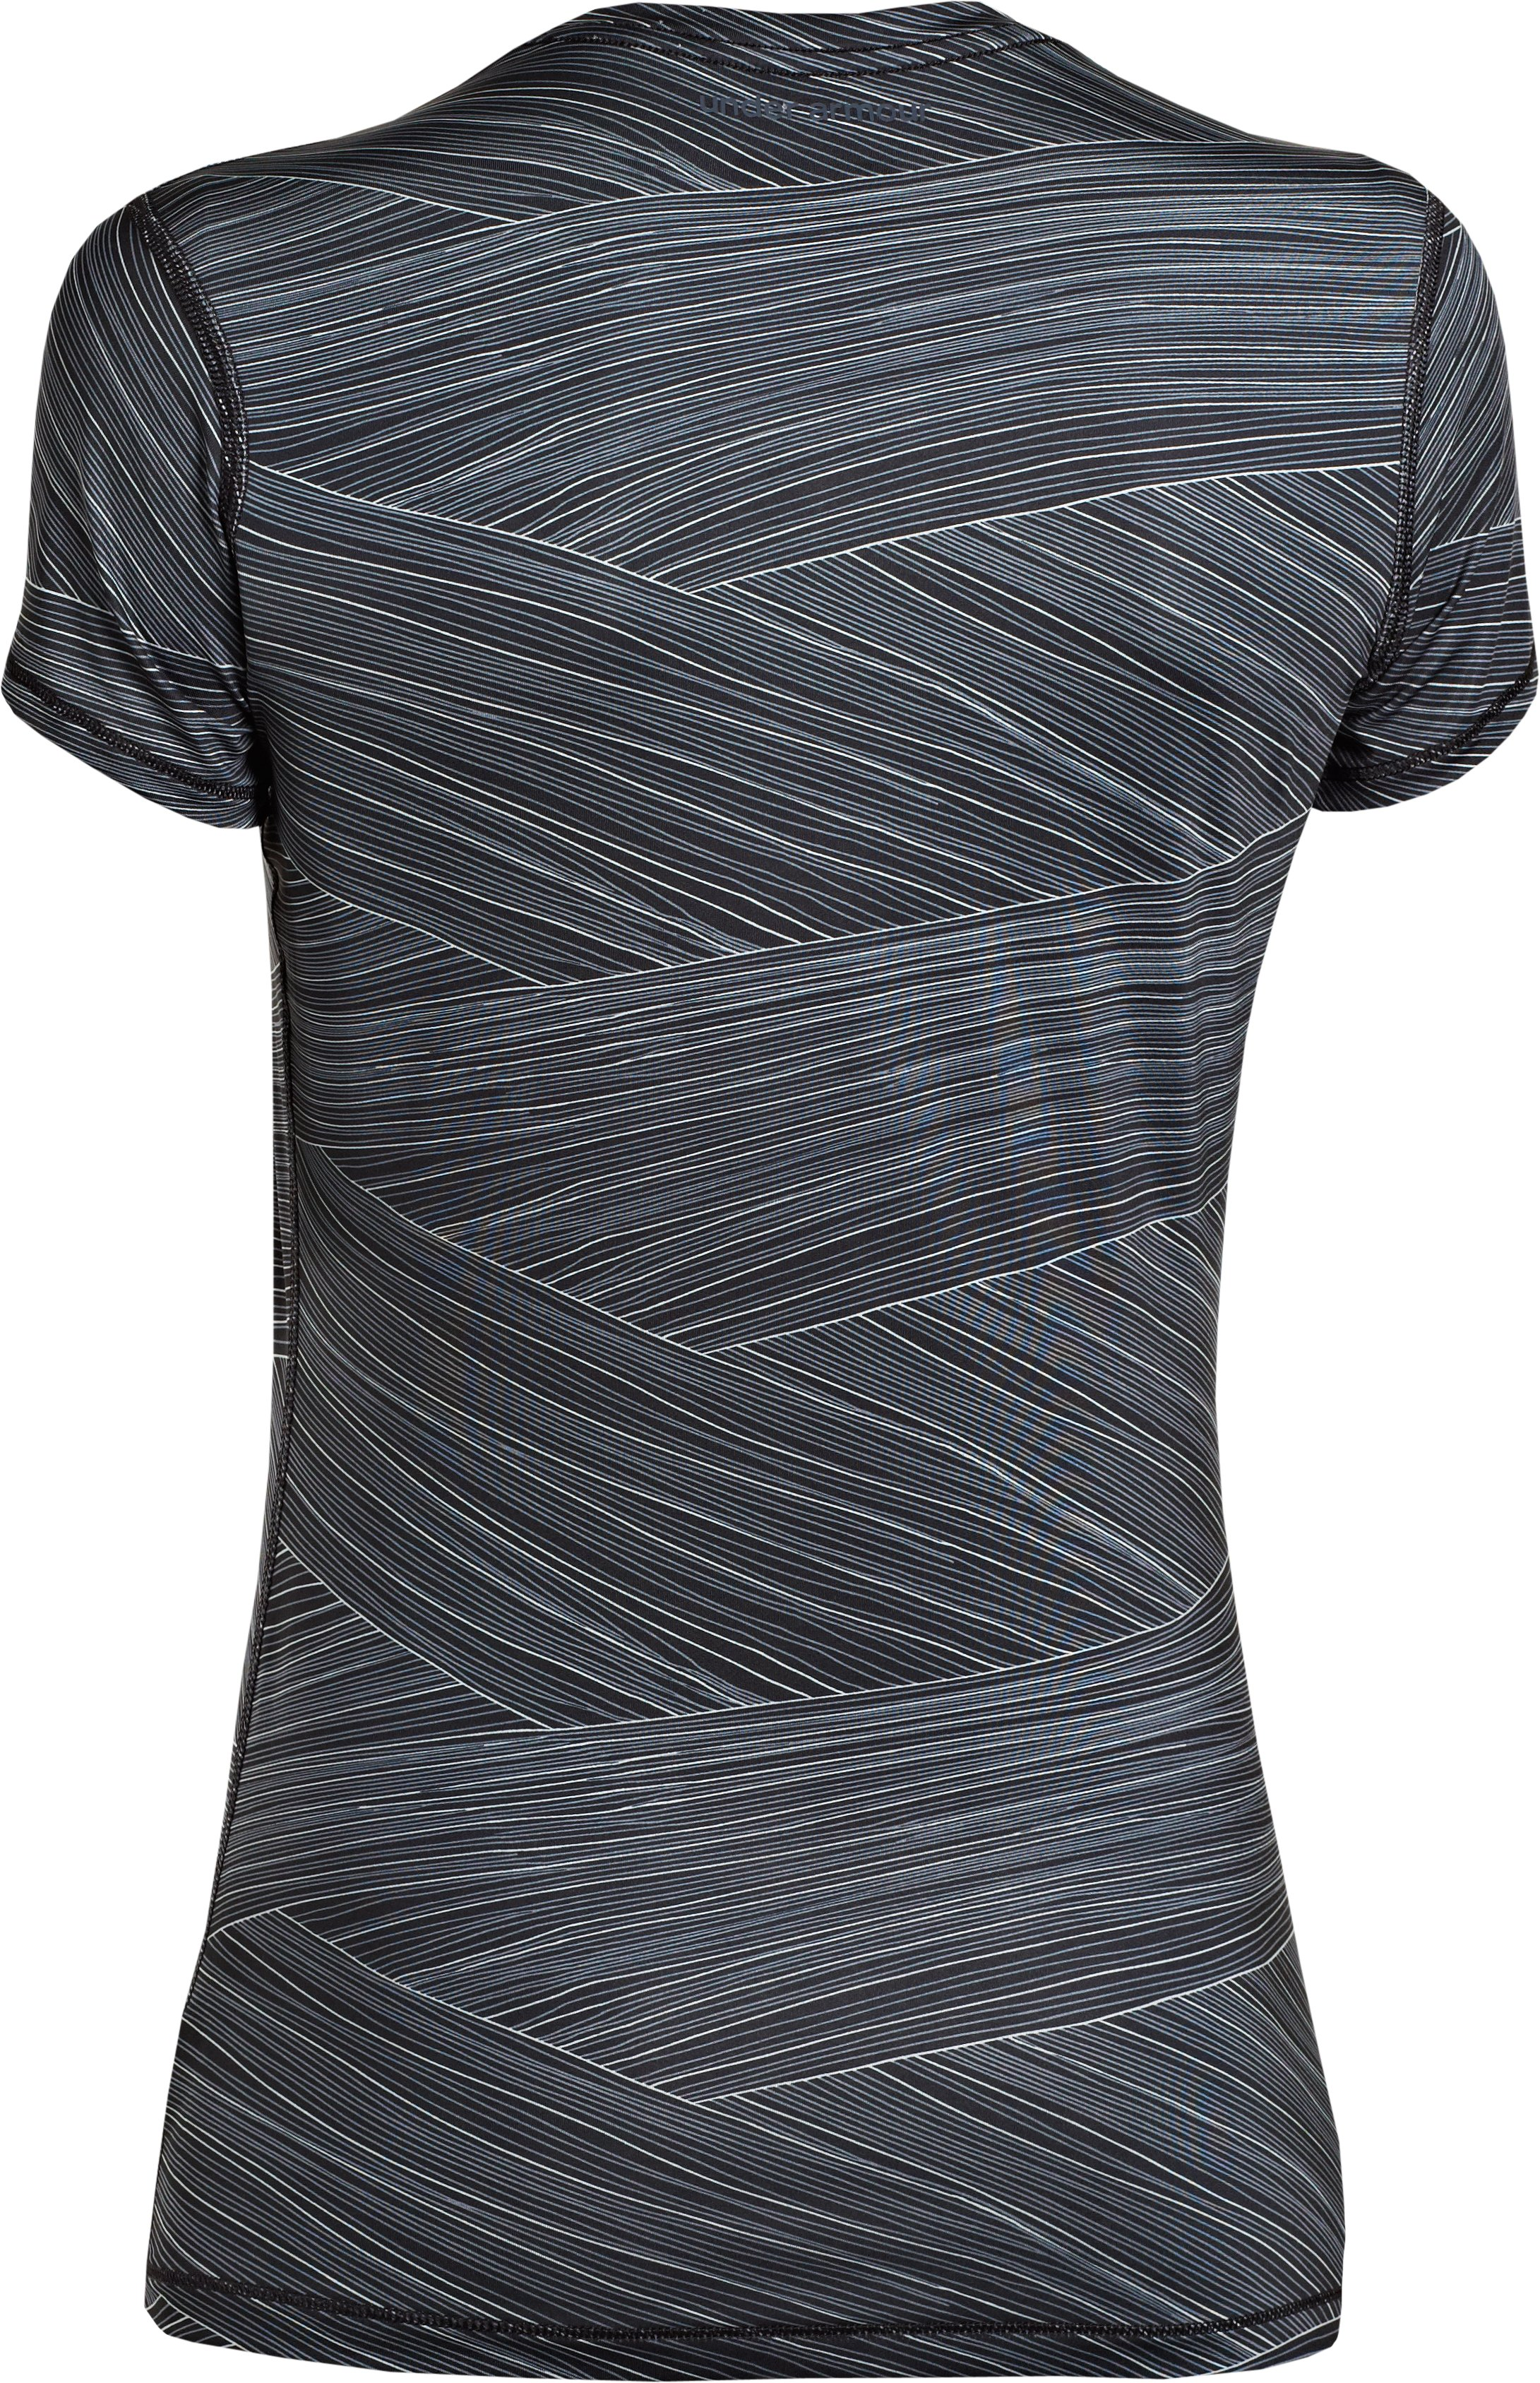 Women's HeatGear® Sonic Printed Short Sleeve, Black , undefined